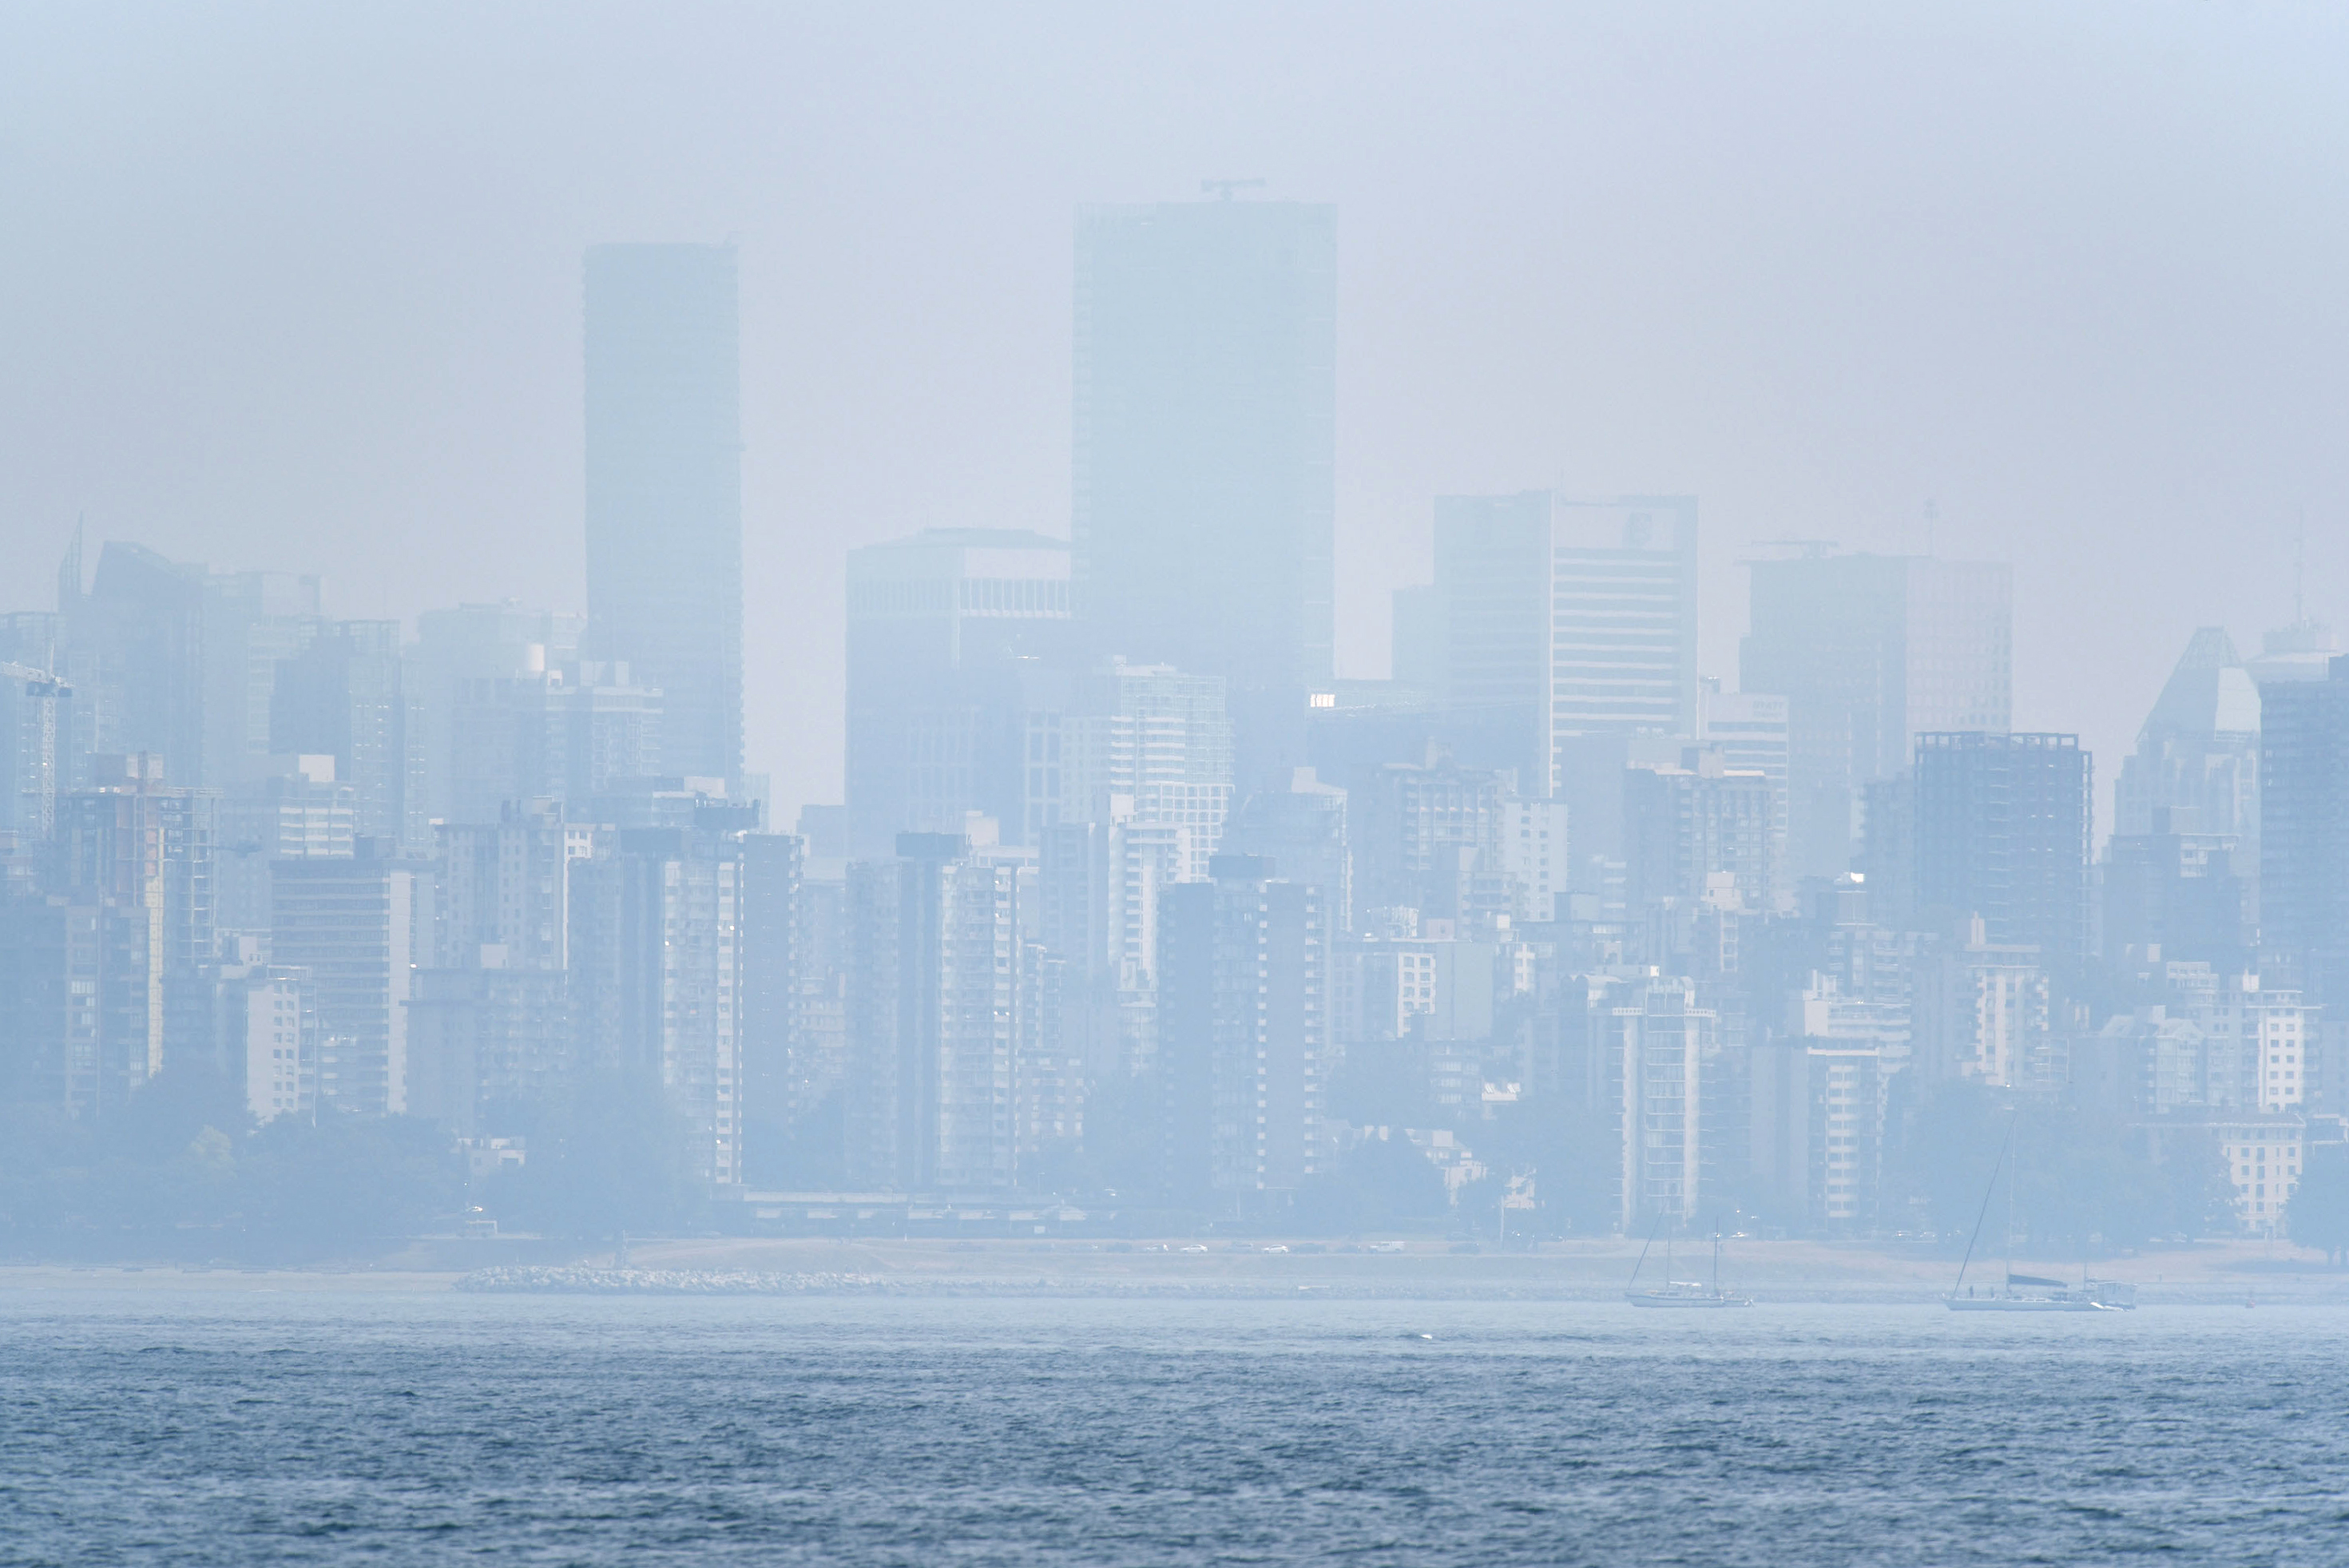 This photo shows the Vancouver skyline under heavy haze as seen from Jericho Beach on Aug. 21, 2018.